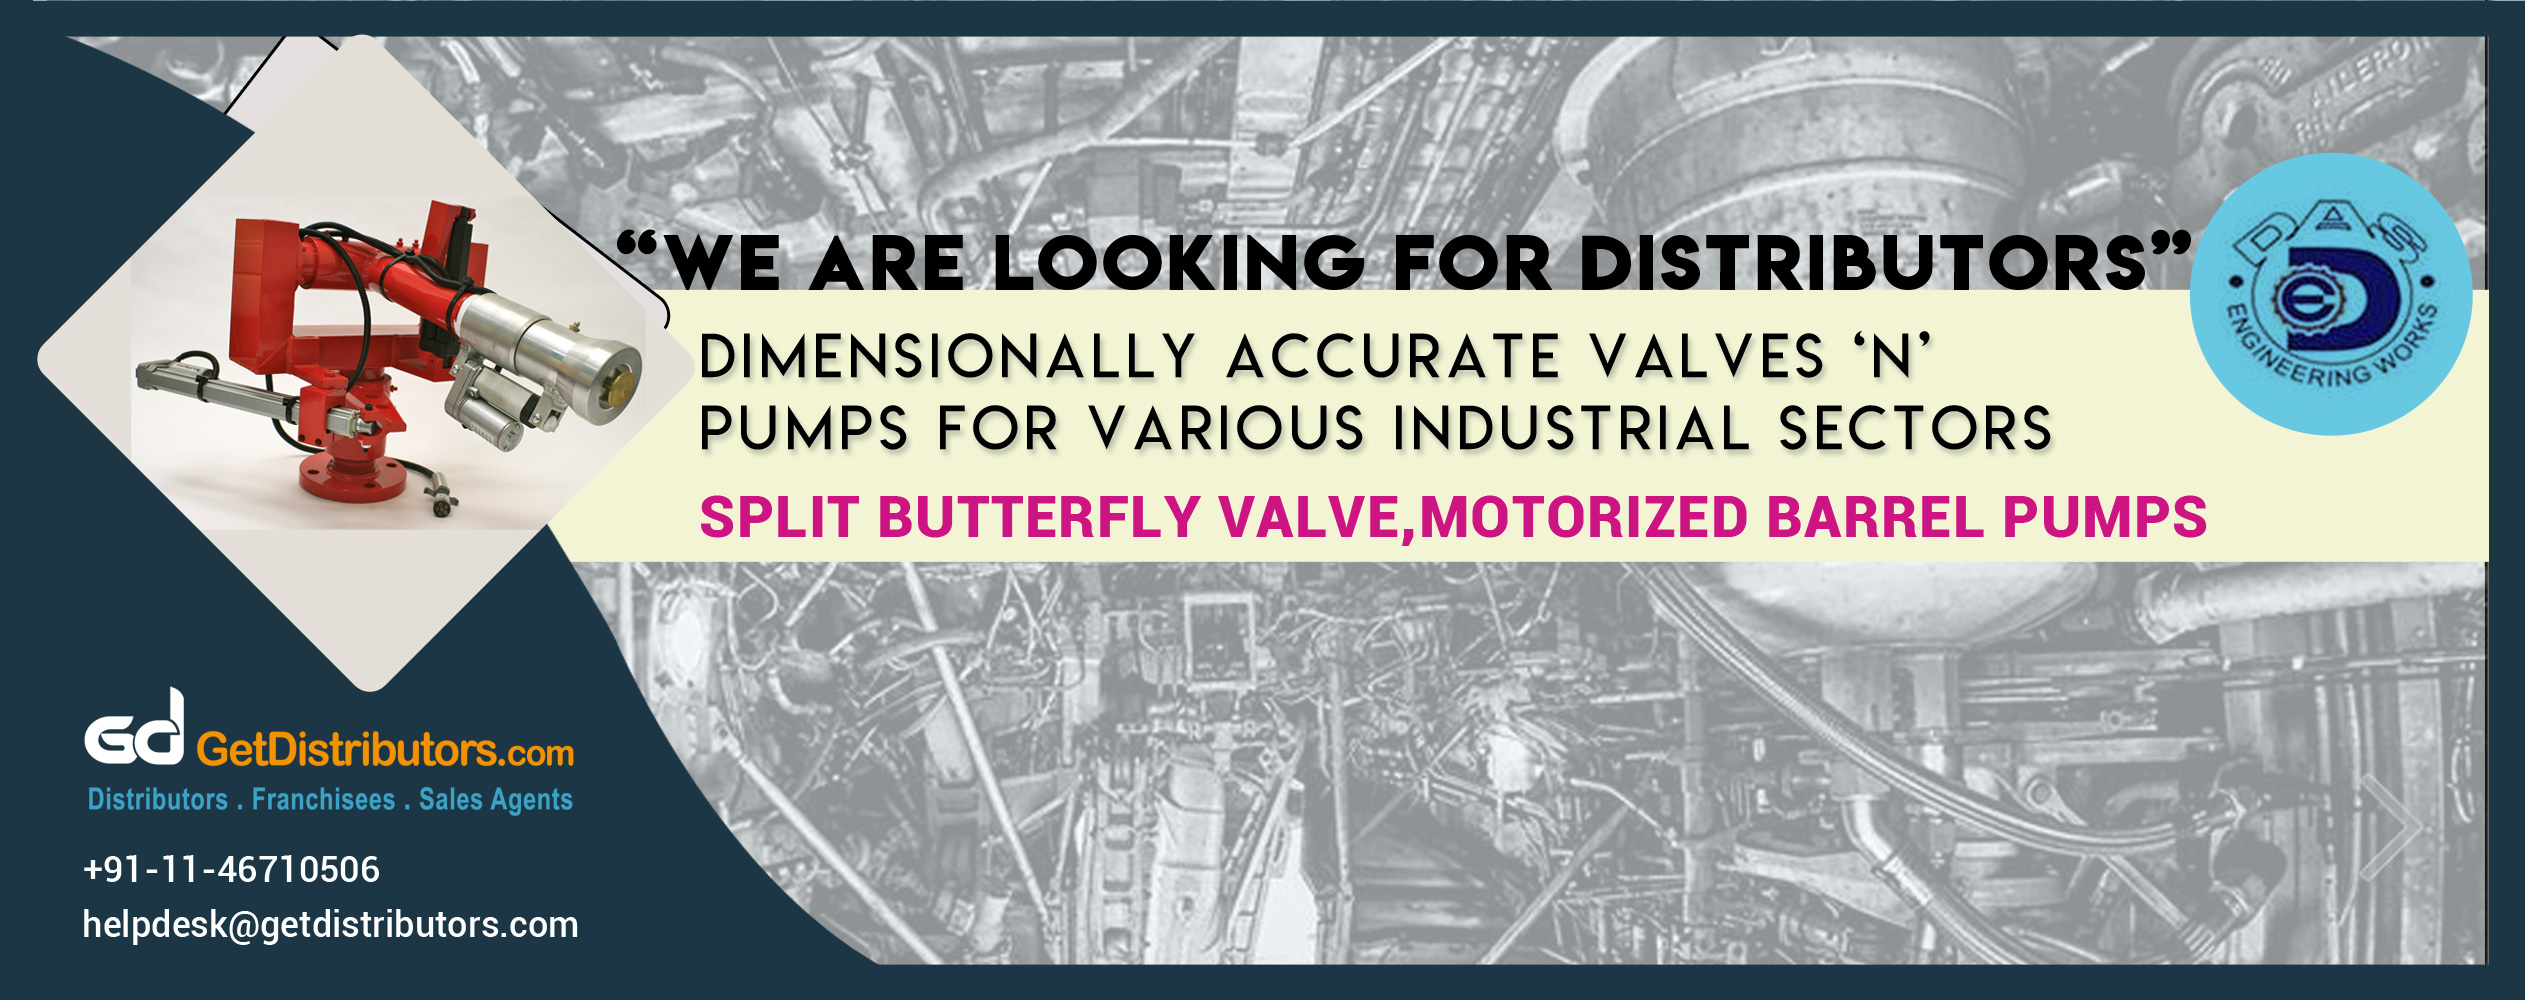 Dimensionally Accurate Valves & Pumps for Various Industrial Sectors